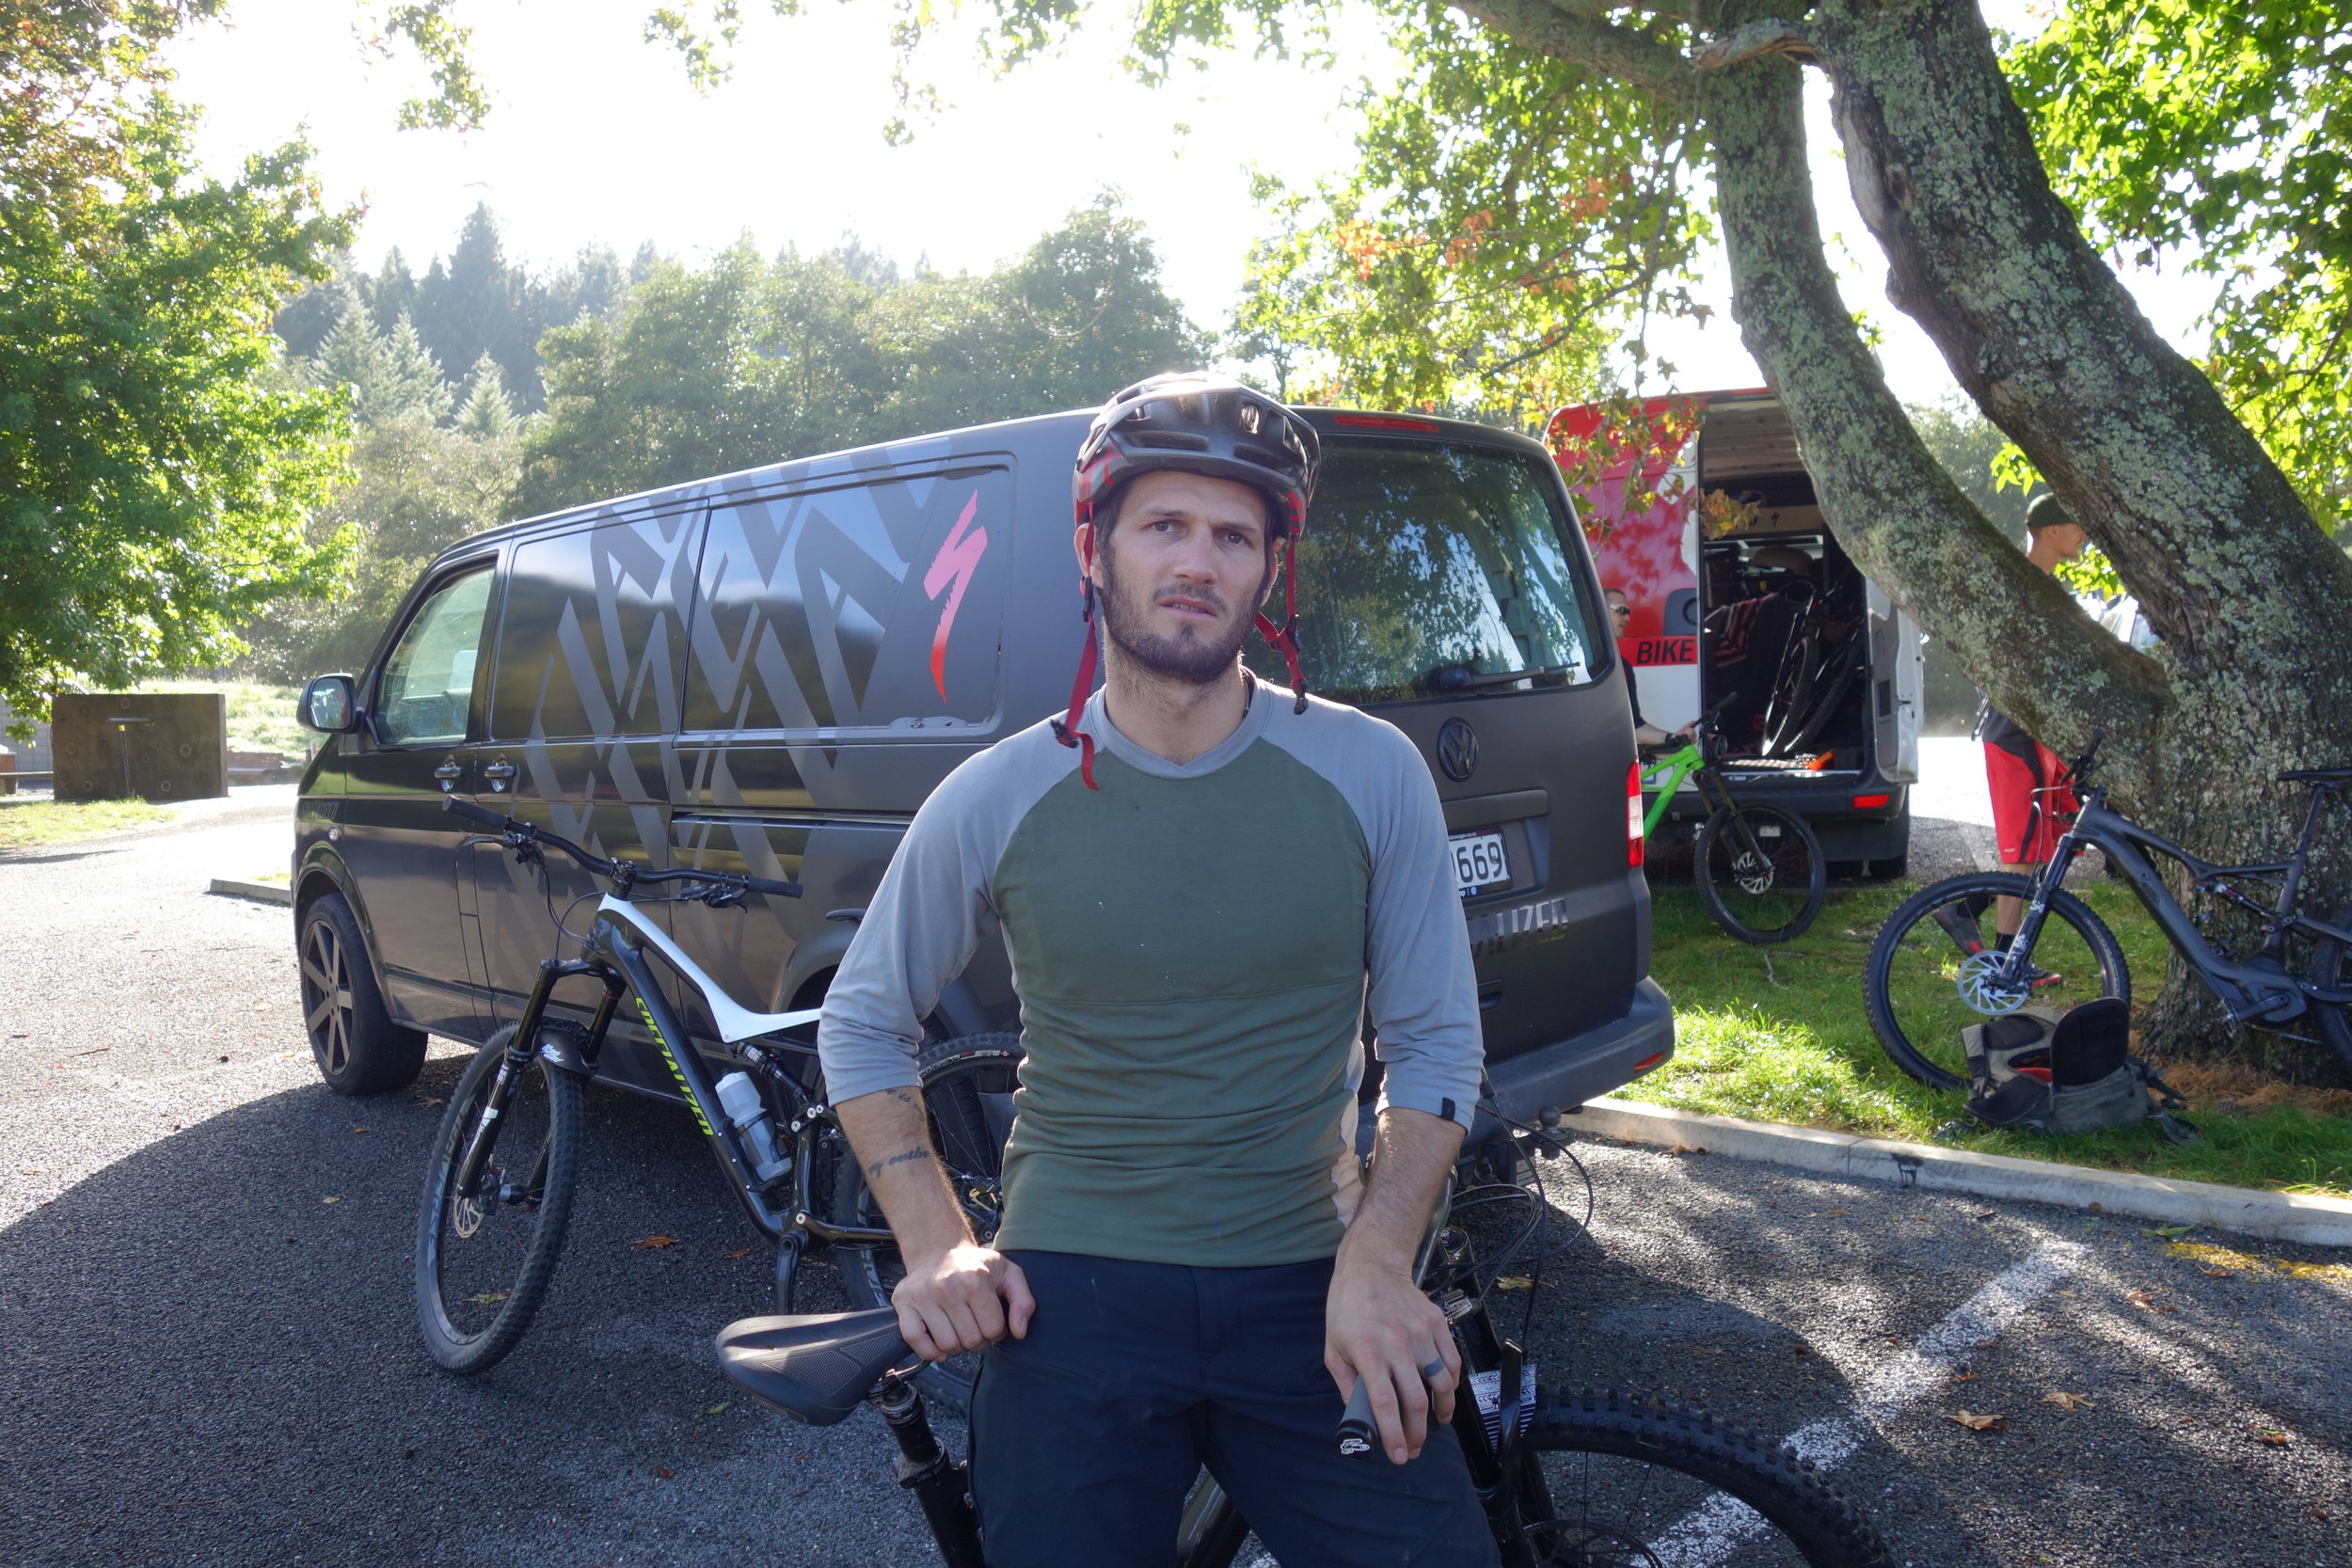 Fanie Kok the King of Stoke travels the world with Specialized getting people out on the trails with tools as well as bikes.